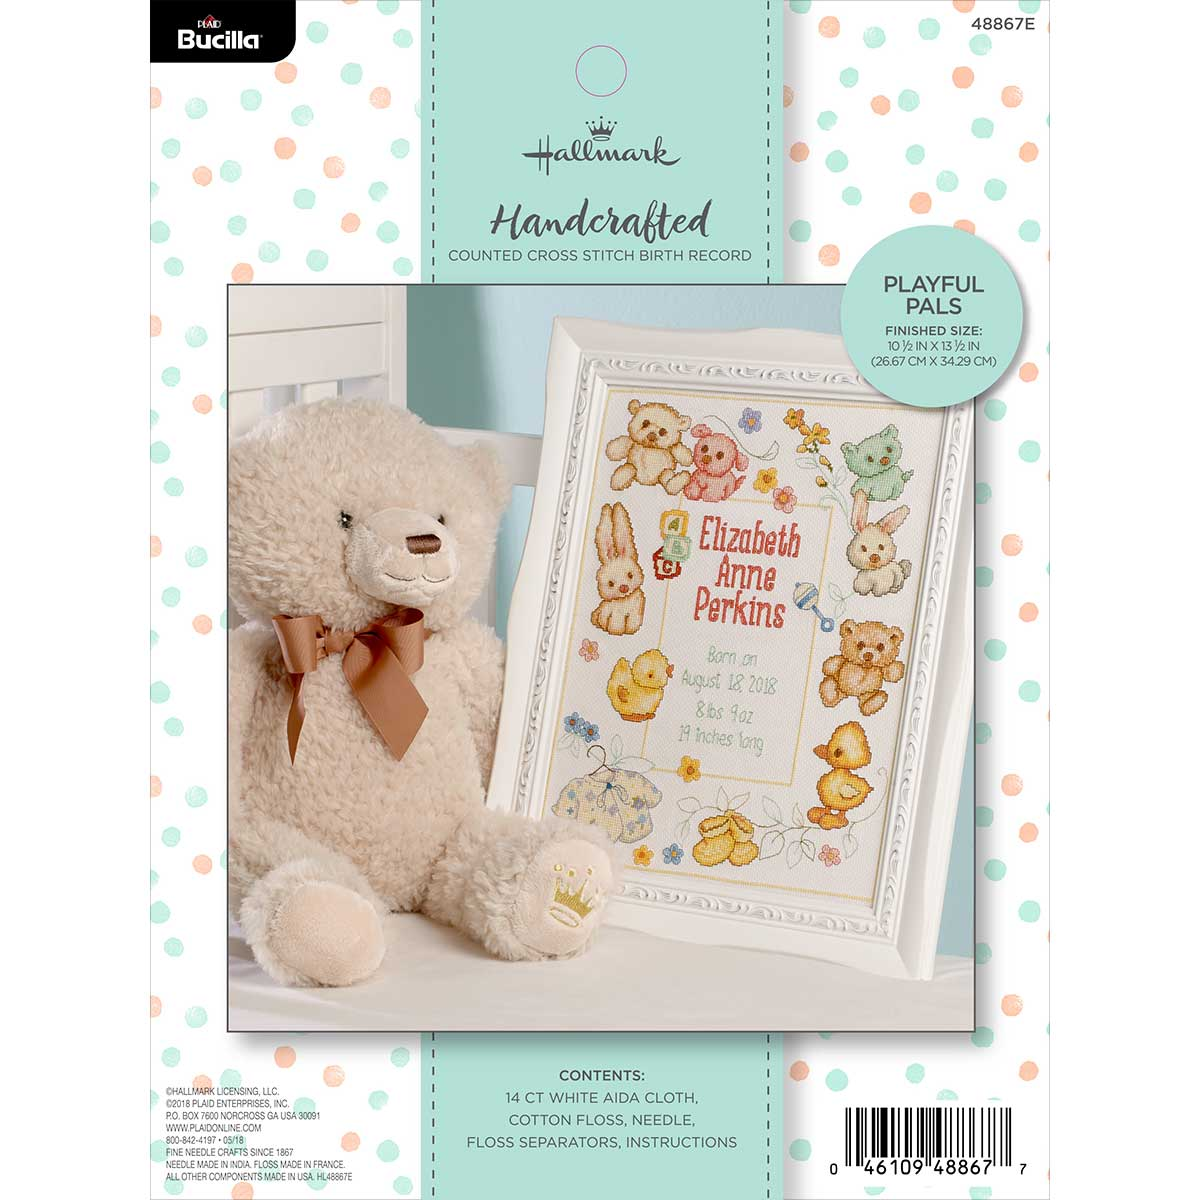 Bucilla ® Baby - Counted Cross Stitch - Crib Ensembles - Hallmark - Playful Pals - Birth Record Kit